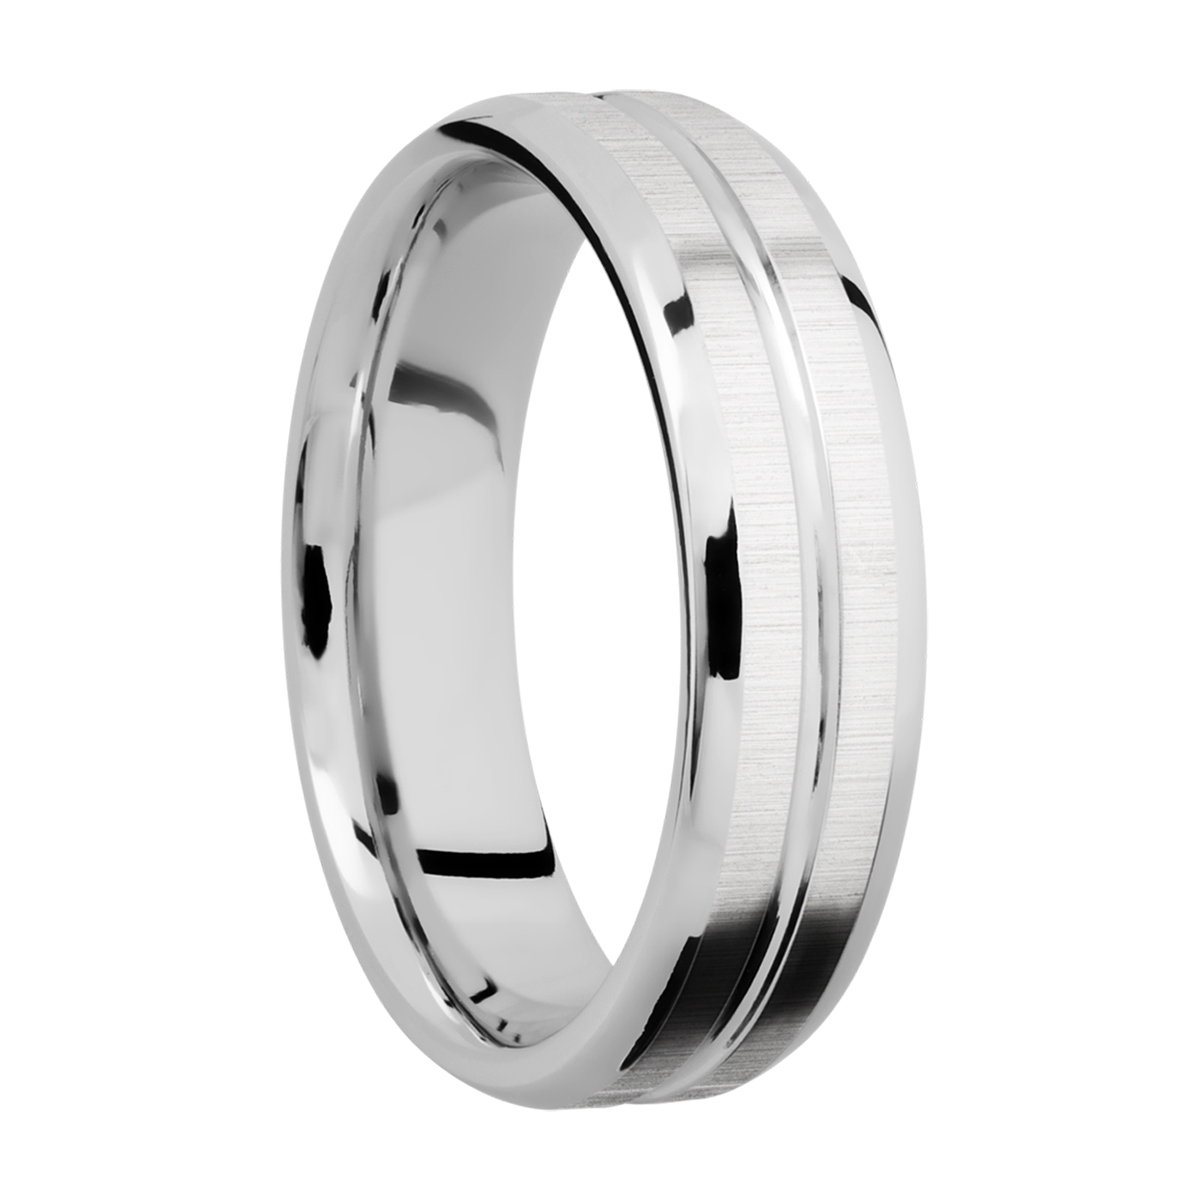 Lashbrook CC6B11U Cobalt Chrome Wedding Ring or Band Alternative View 1